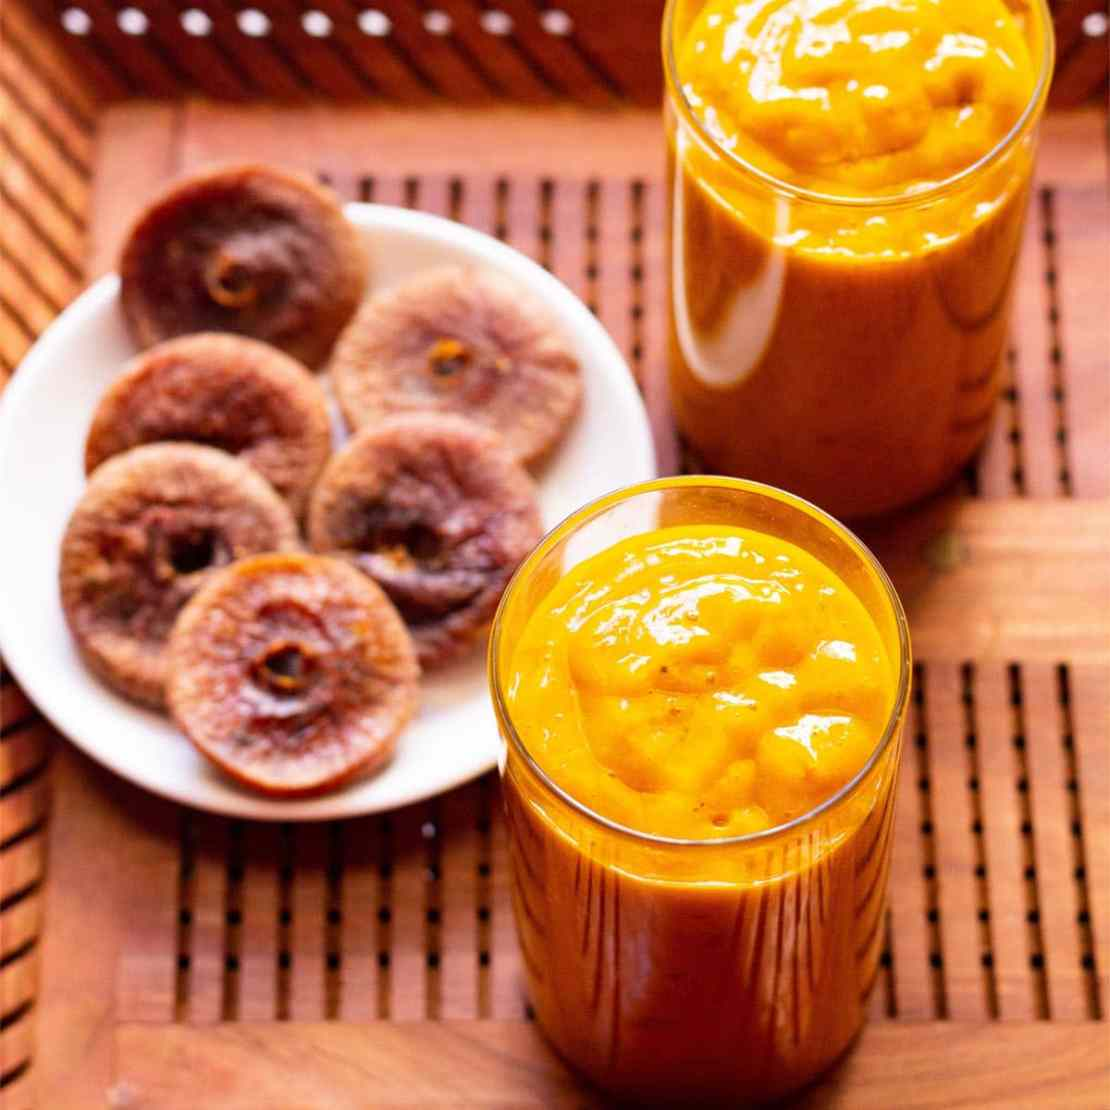 mango smoothie with figs served in two glasses and a white plate of dried figs on a wooden tray